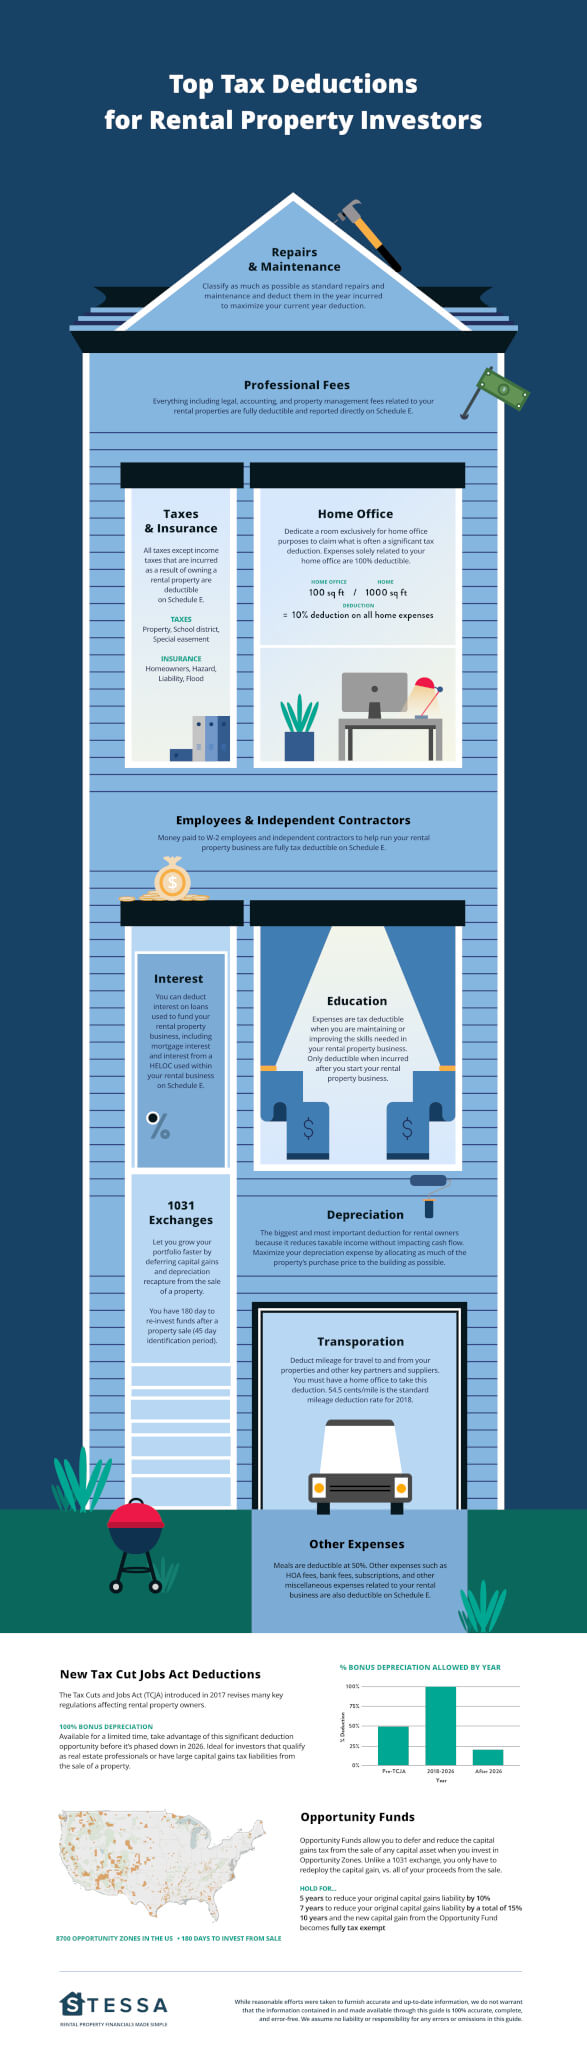 Real estate investors and tax deductions infographic